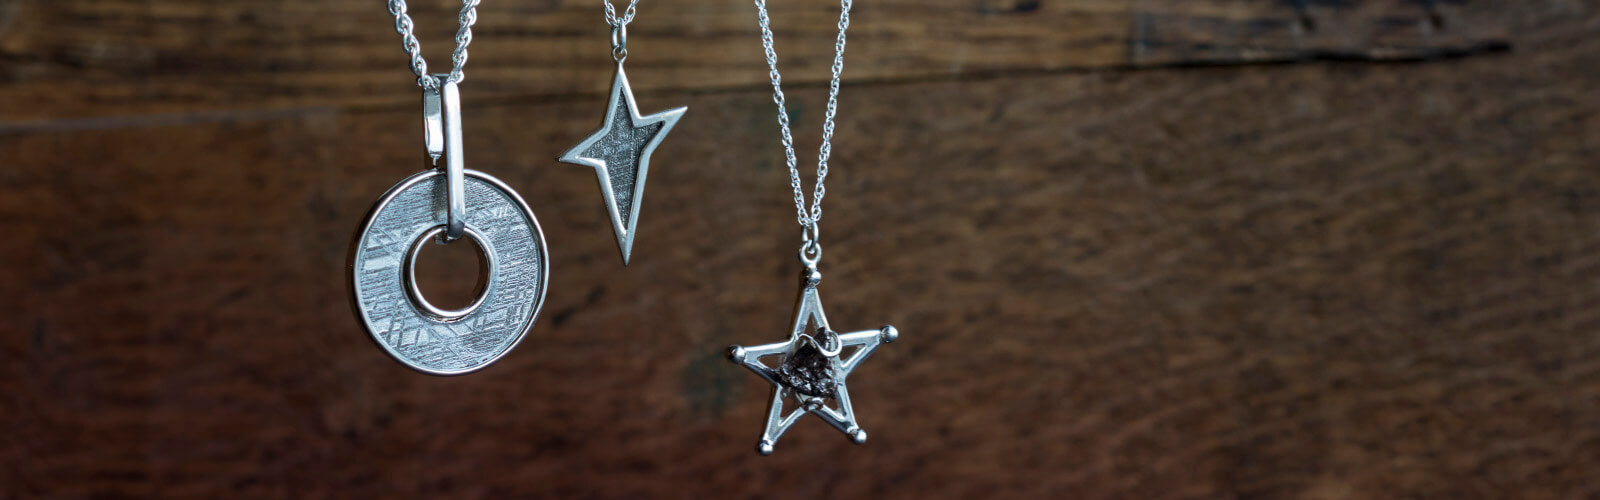 Meteorite Necklaces